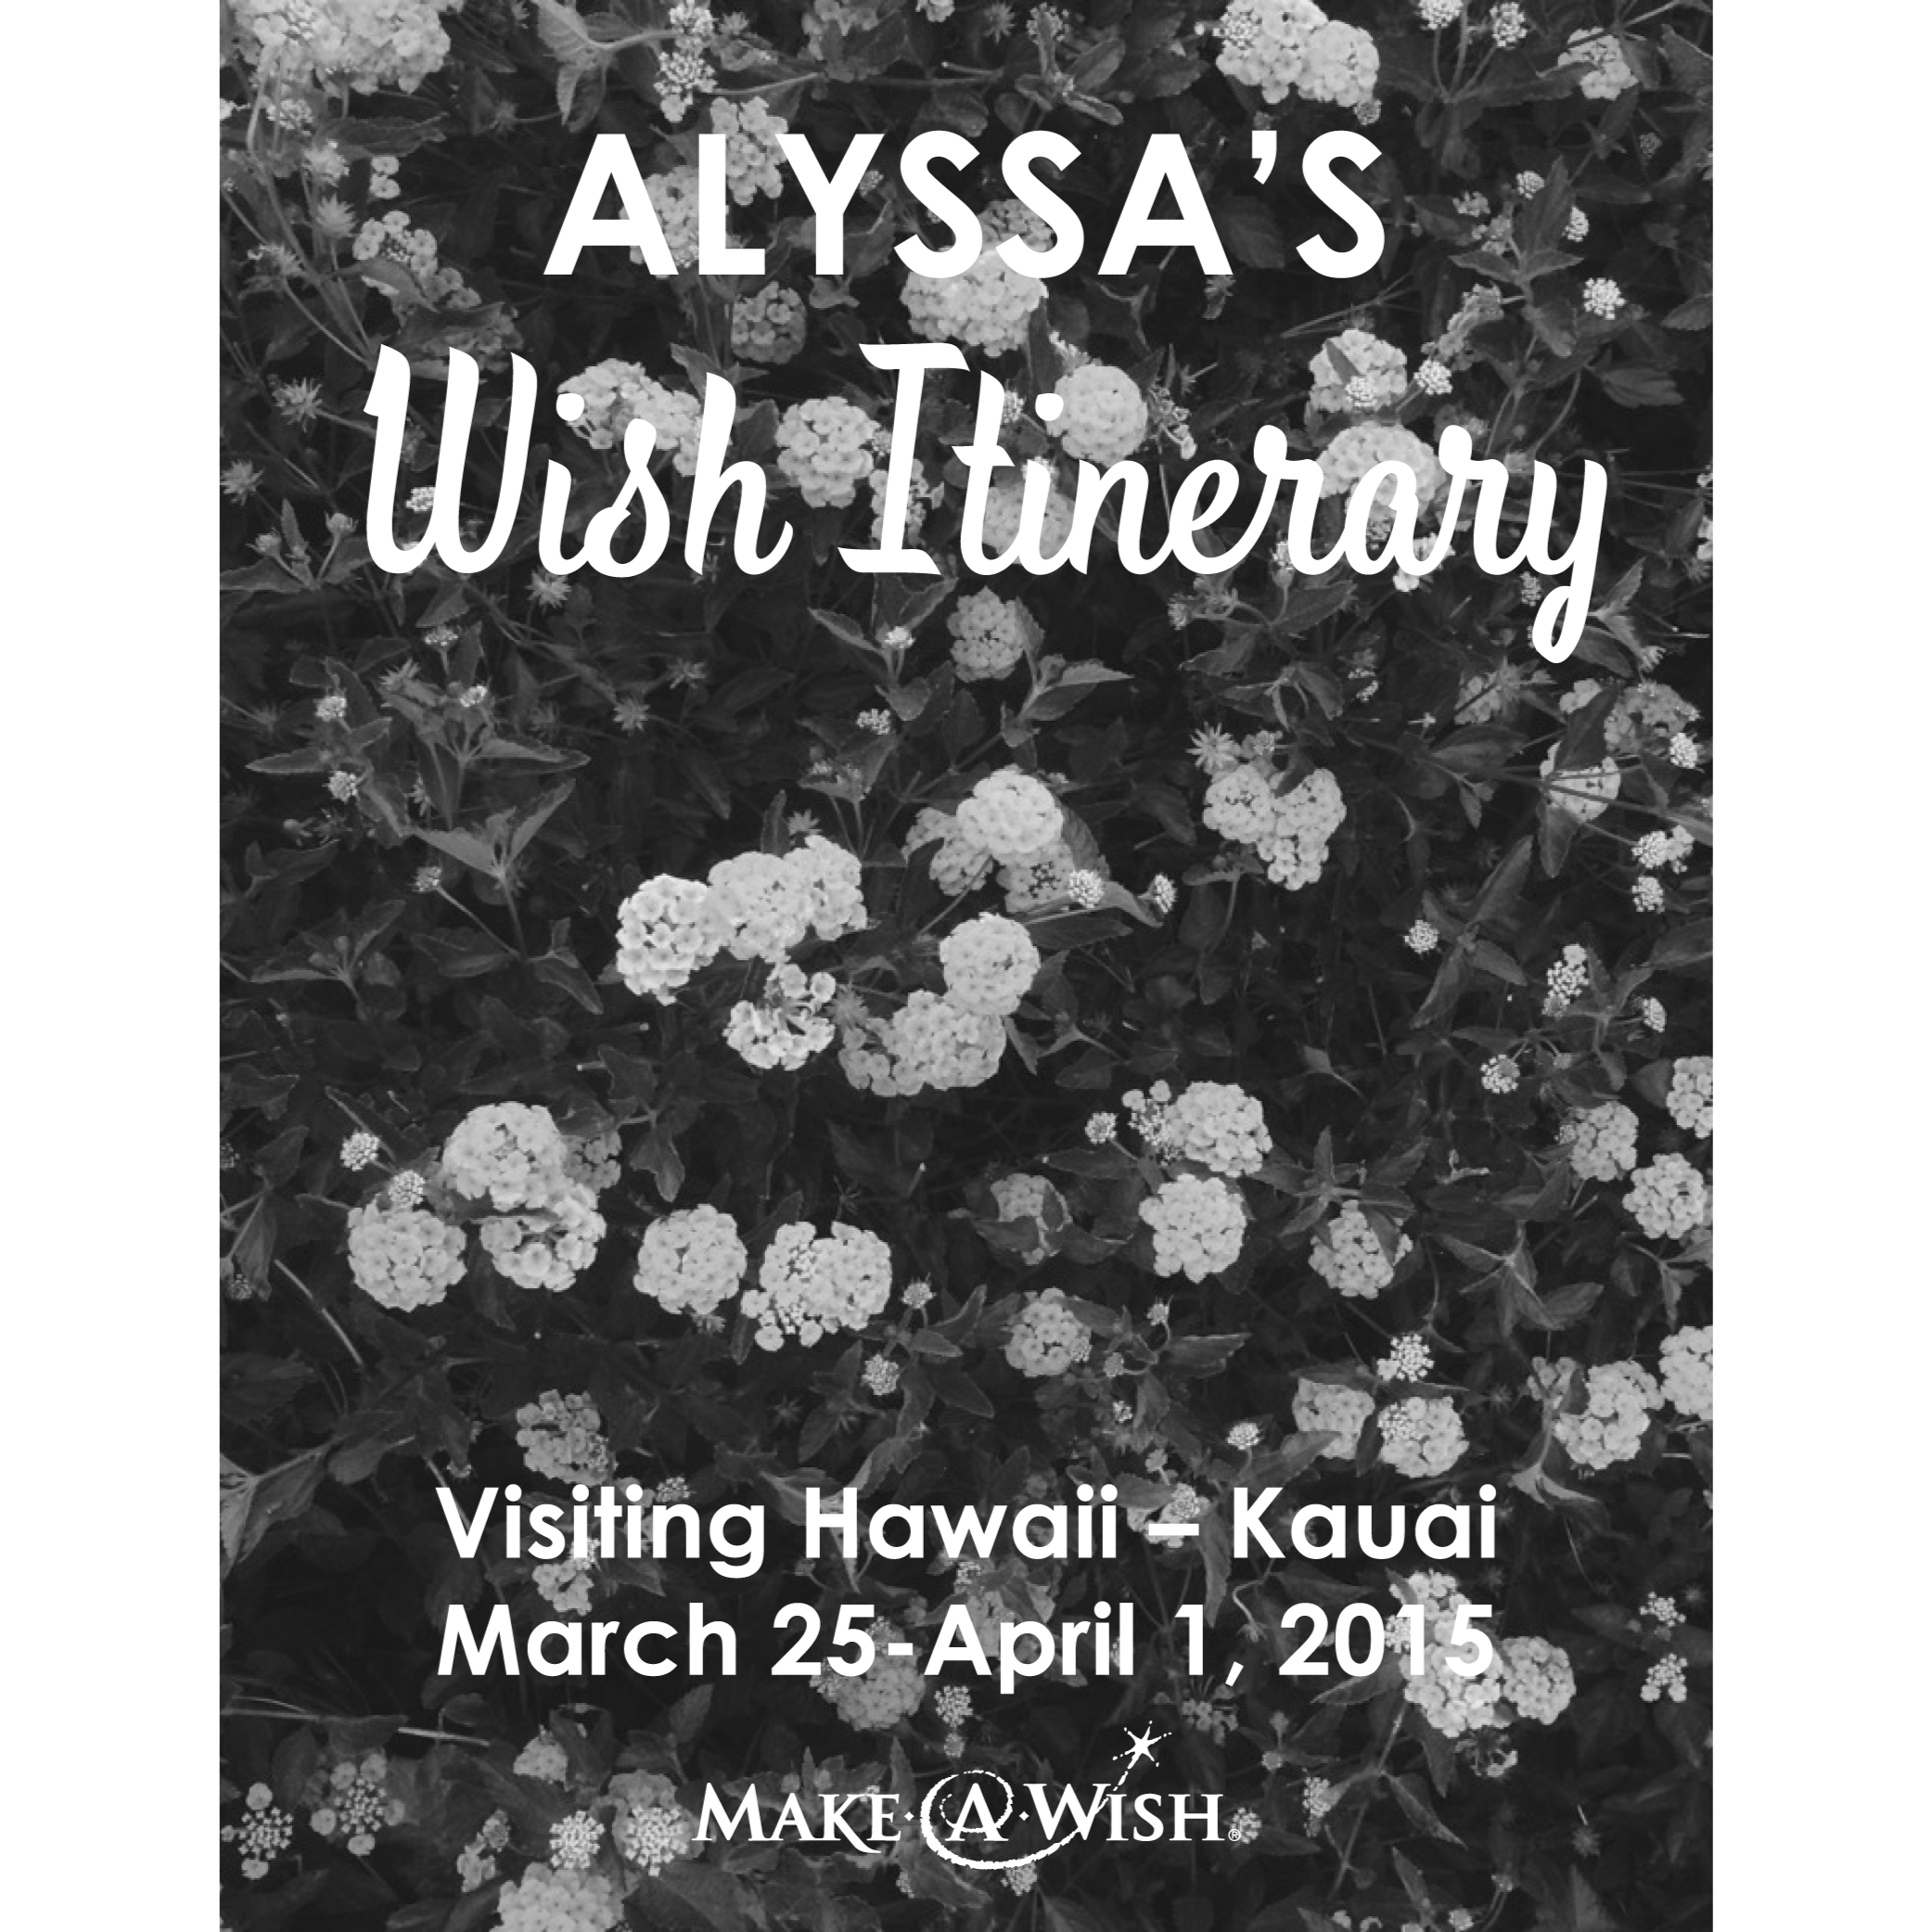 Make-A-Wish Hawaii Itinerary